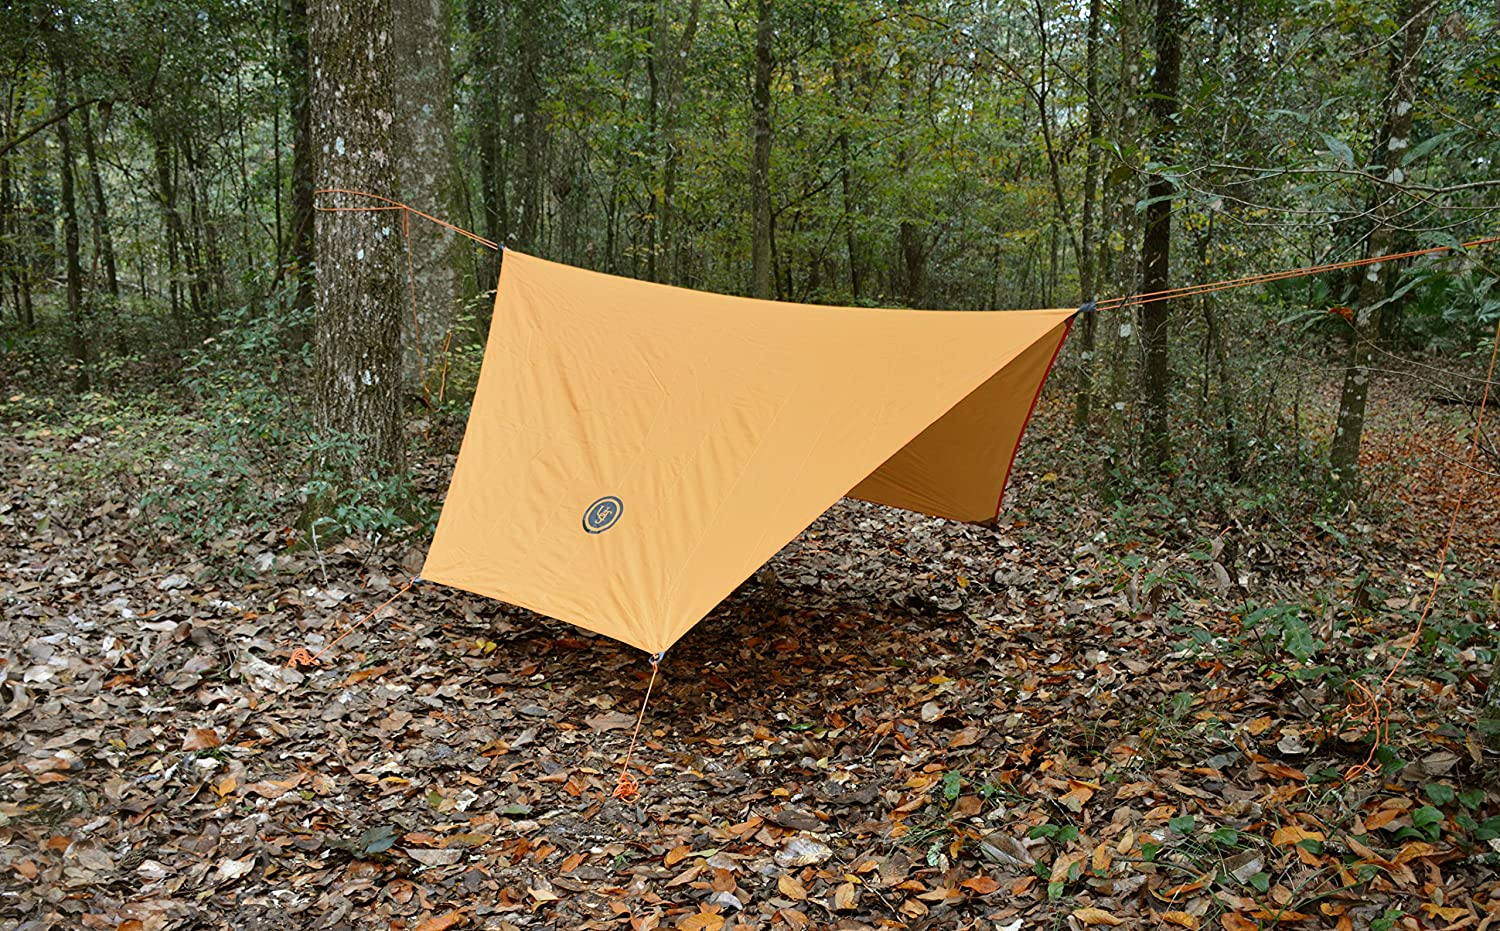 Multifunctional Use and Reversible and Flame Retardant Construction for Emergency UST Tube Tarp and Camping Shelter with Compact Backpacking and Outdoor Survival Camping Hiking